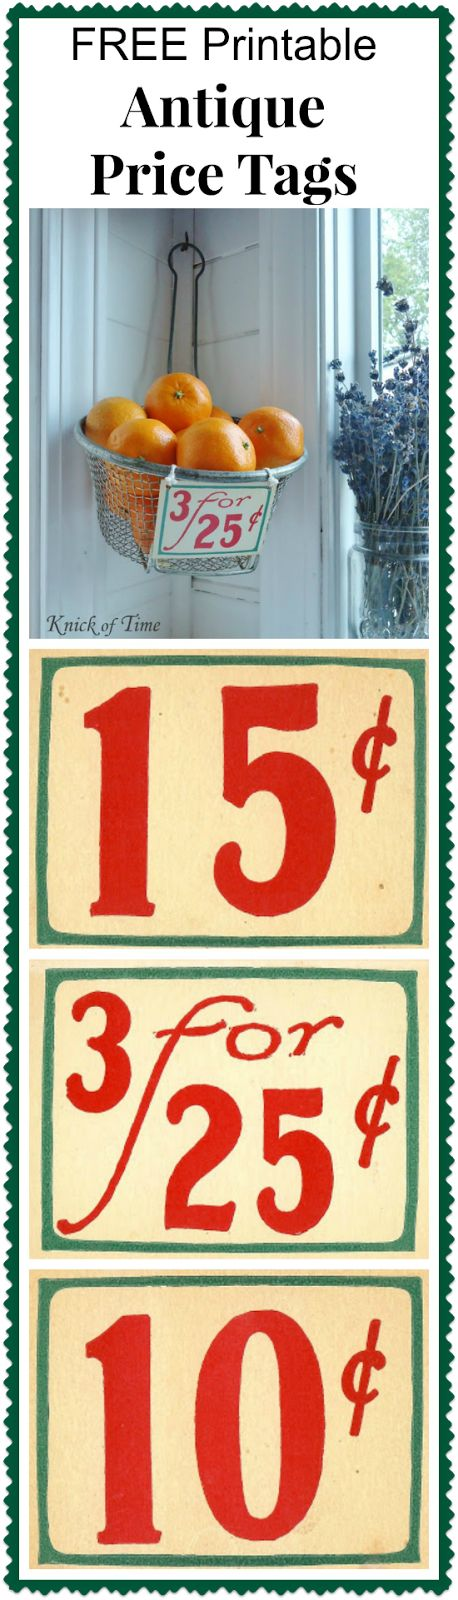 Antique Grocery Store Price Tags and Receipt ~~~ Visit Knick of Time @ knickoftime.net